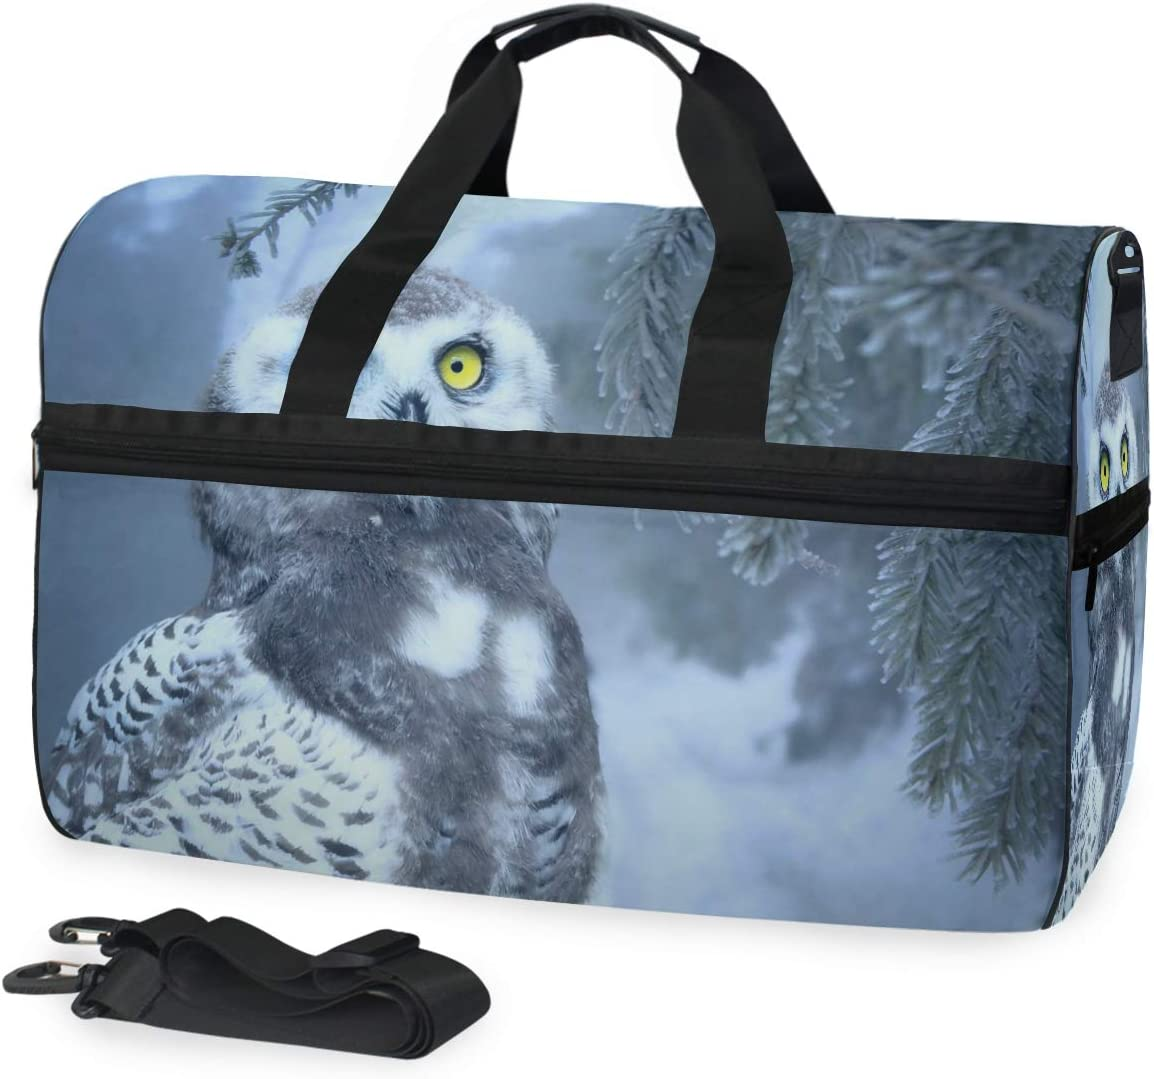 MUOOUM Animal Owl Large Duffle Bags Sports Gym Bag with Shoes Compartment for Men and Women